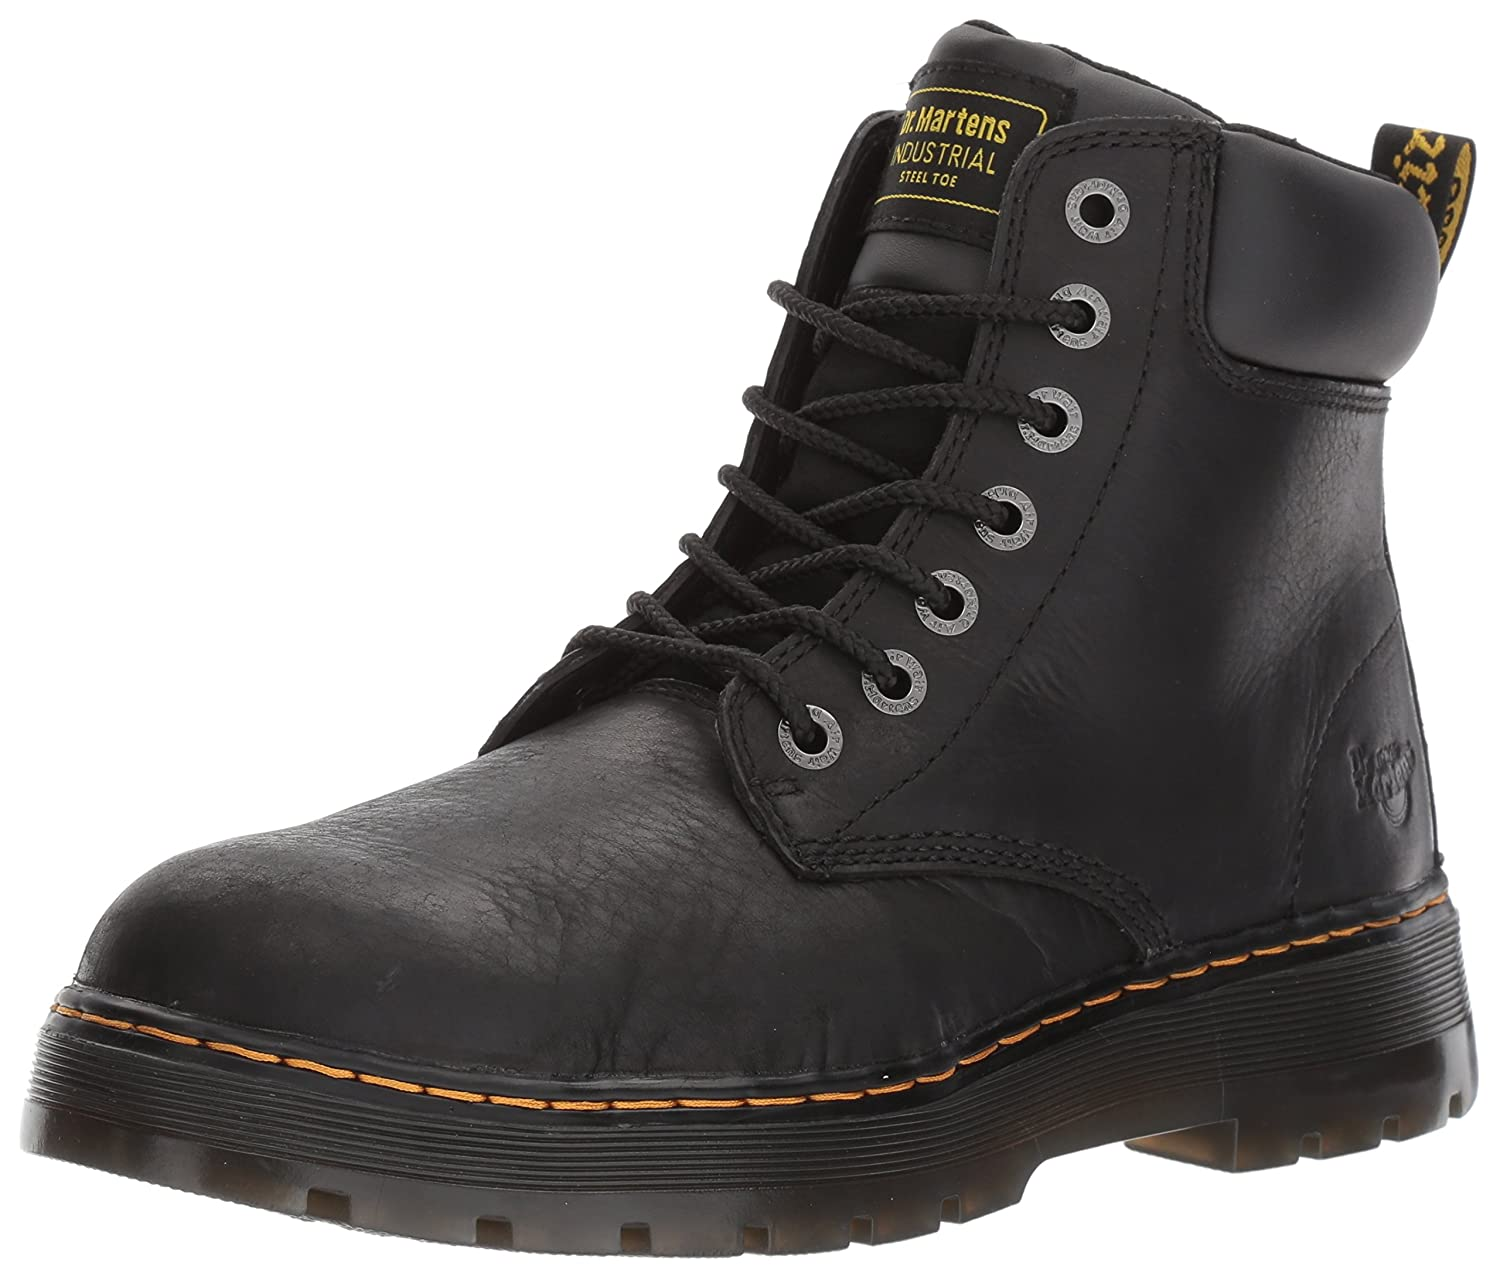 Dr. Martens Men's Winch 7-Eye Cushion Safety Toe Boot R16258201